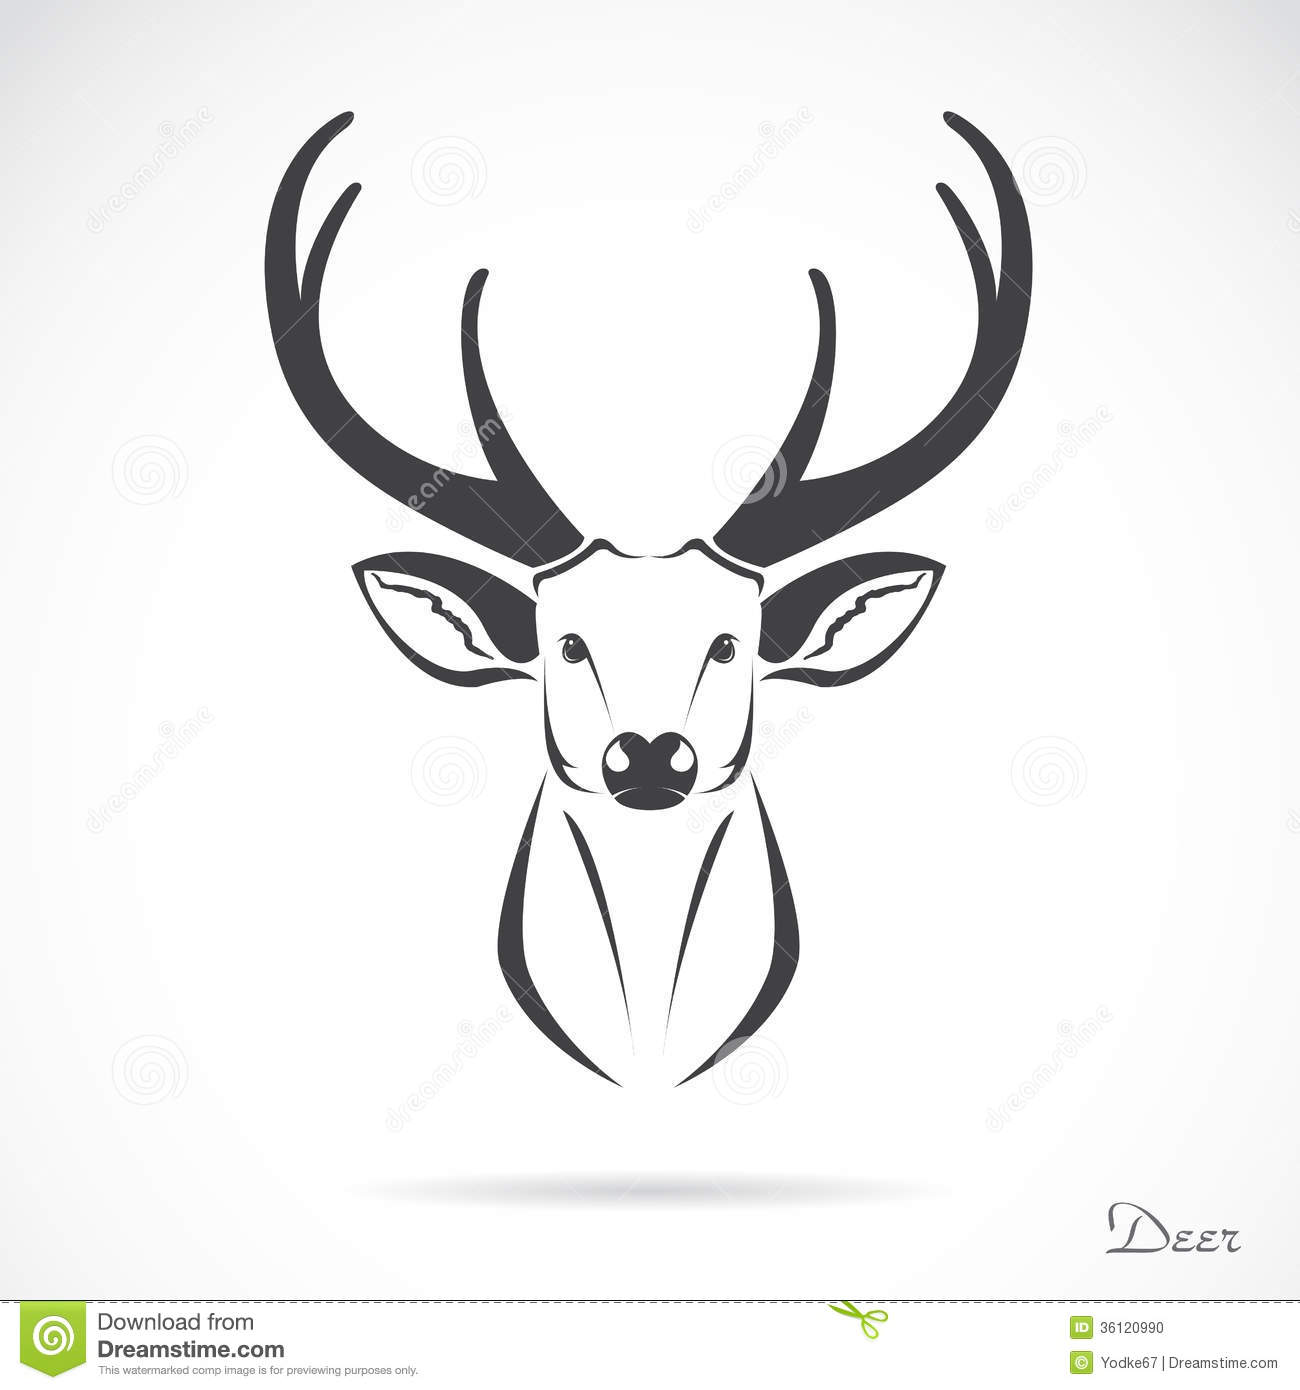 Moose Head Images Stock Photos amp Vectors  Shutterstock